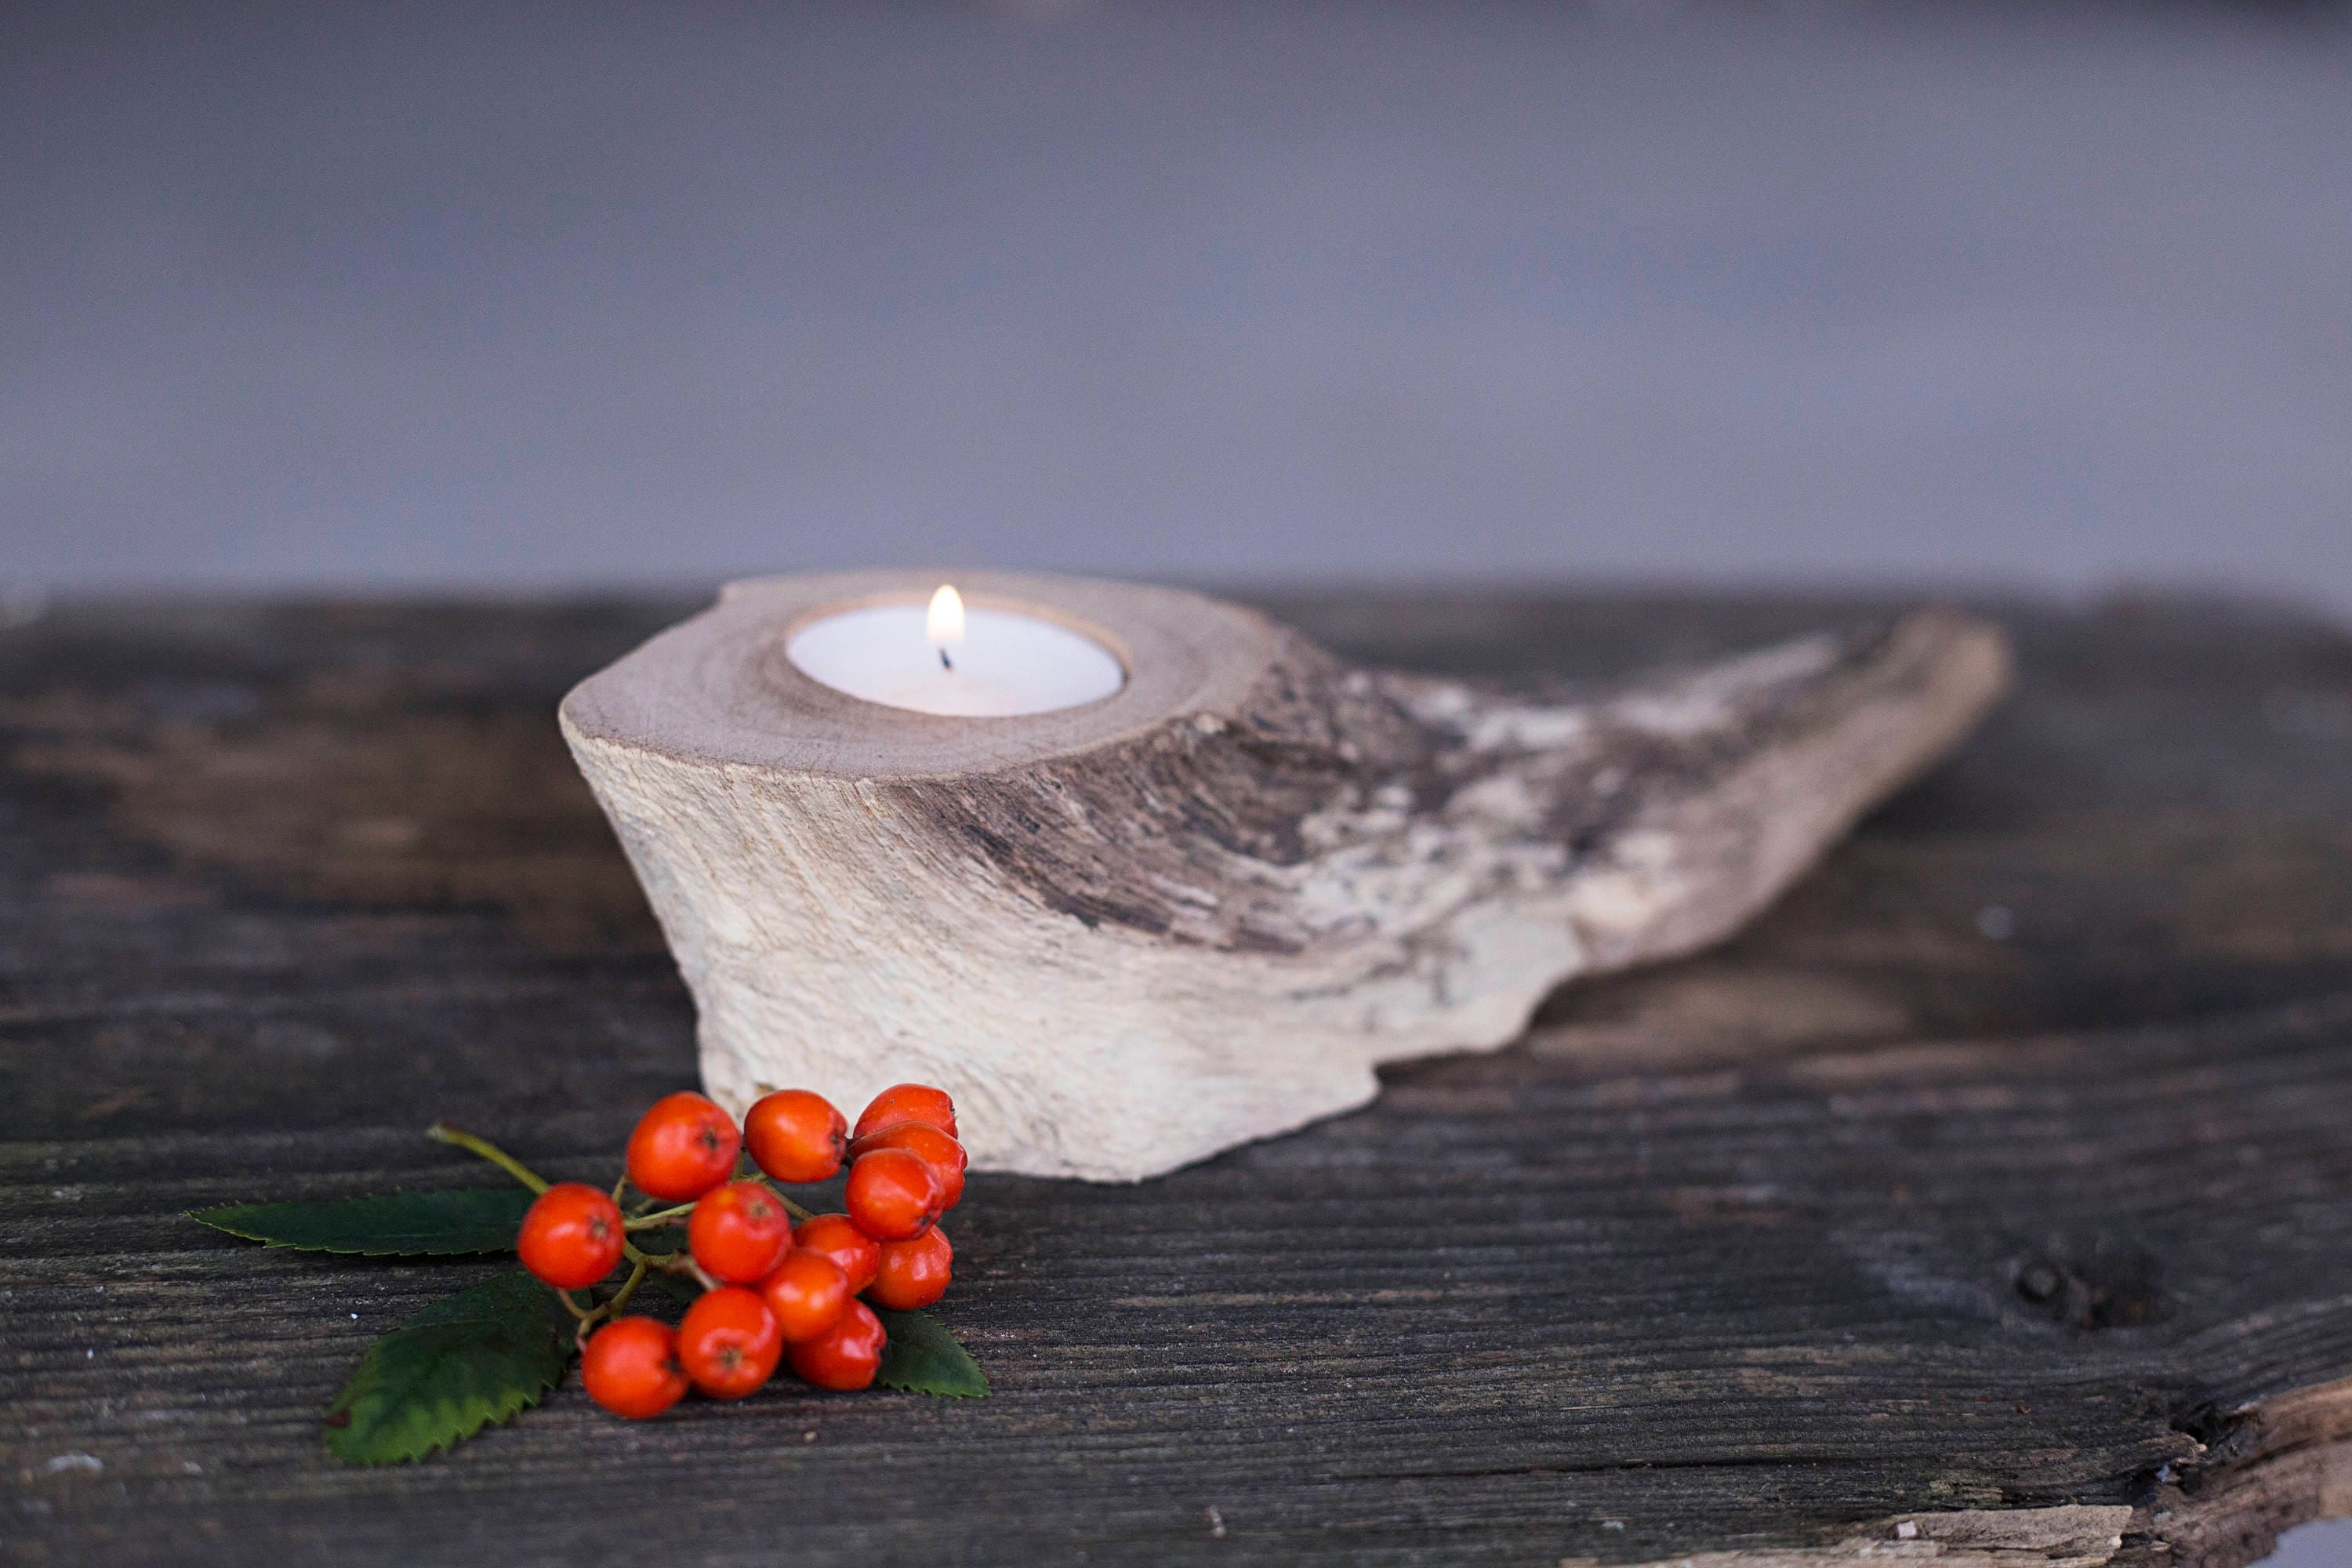 Rustic Candle Holder Tea Light Holder Wooden Table Decor Rustic